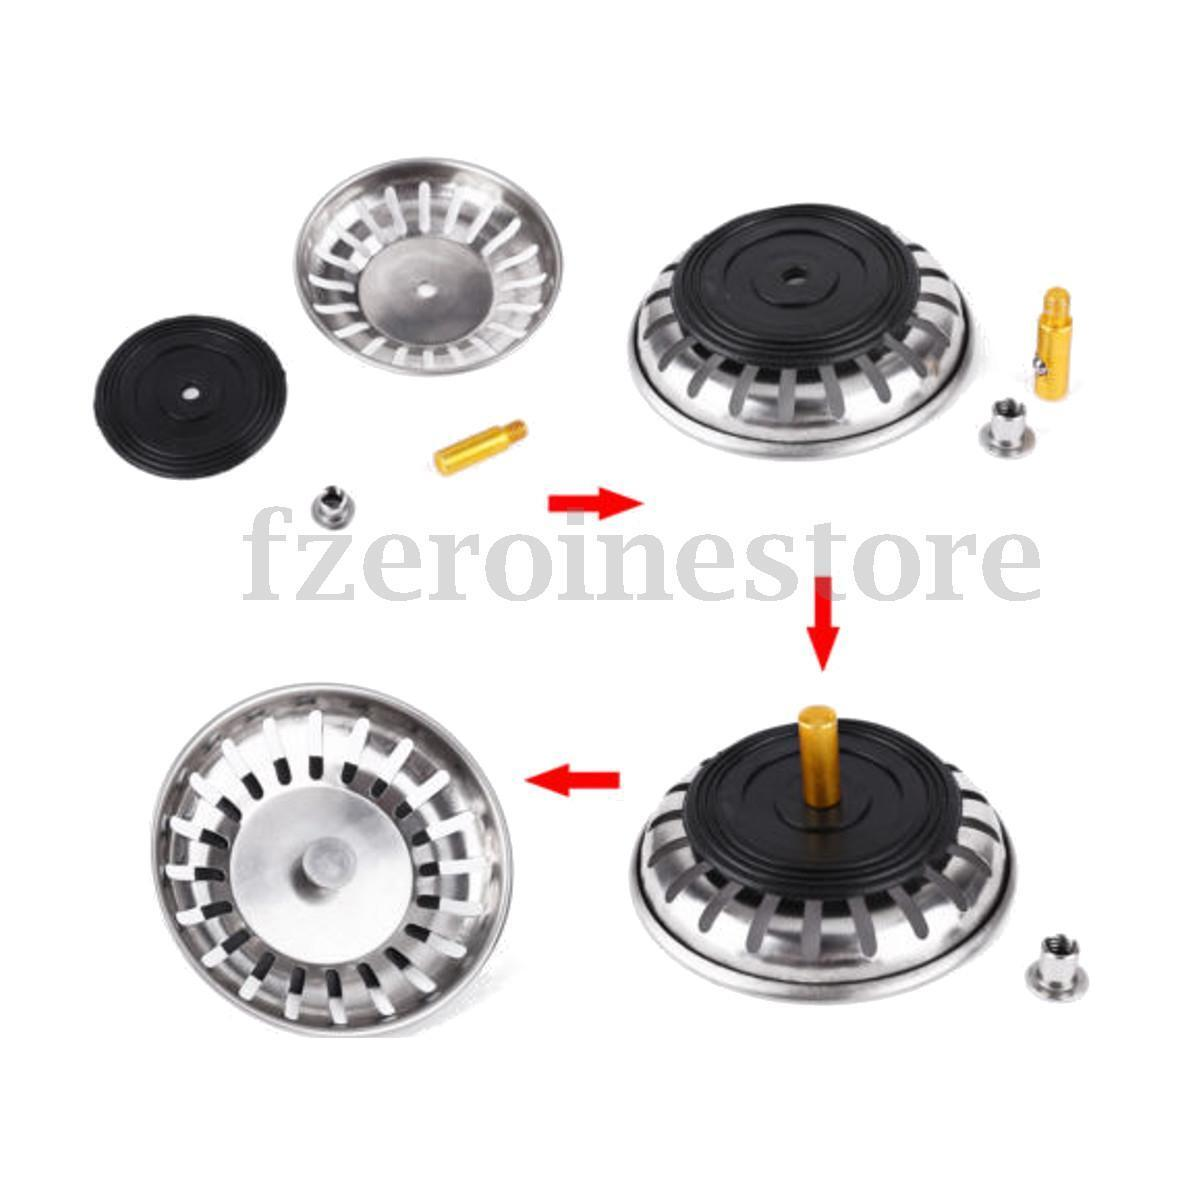 83MM REPLACEMENT STRAINER Waste Kitchen Sink Plugs Fits Most Modern ...